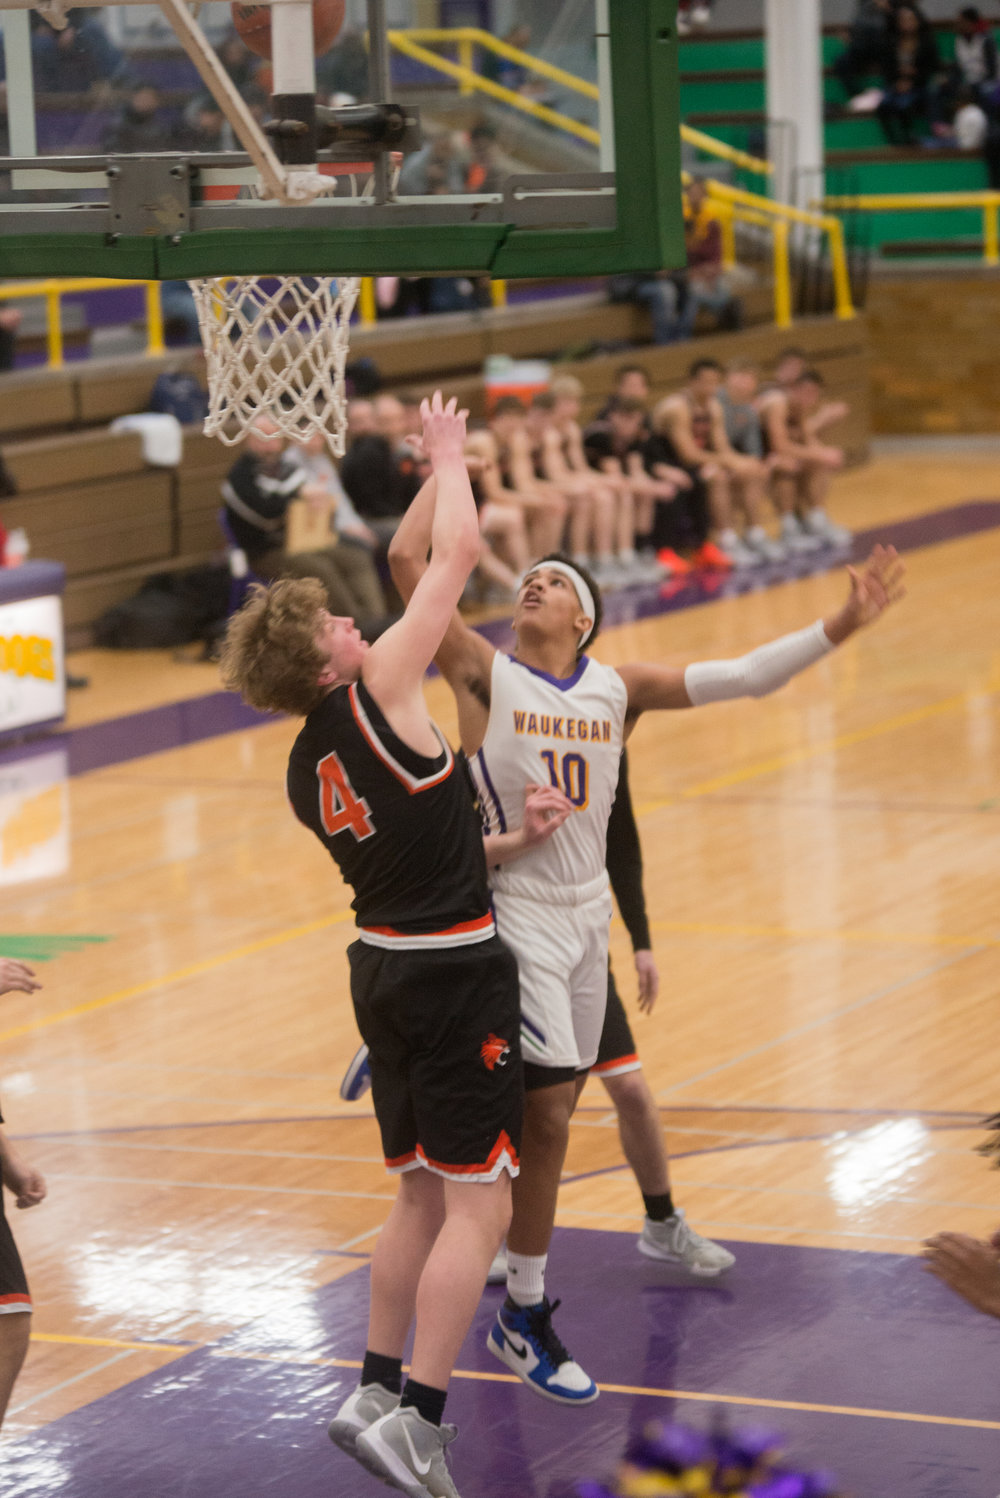 40-Ryan-Edingburg-puts-up-a-shot-in-the-paint-vs-Liberyville.jpg